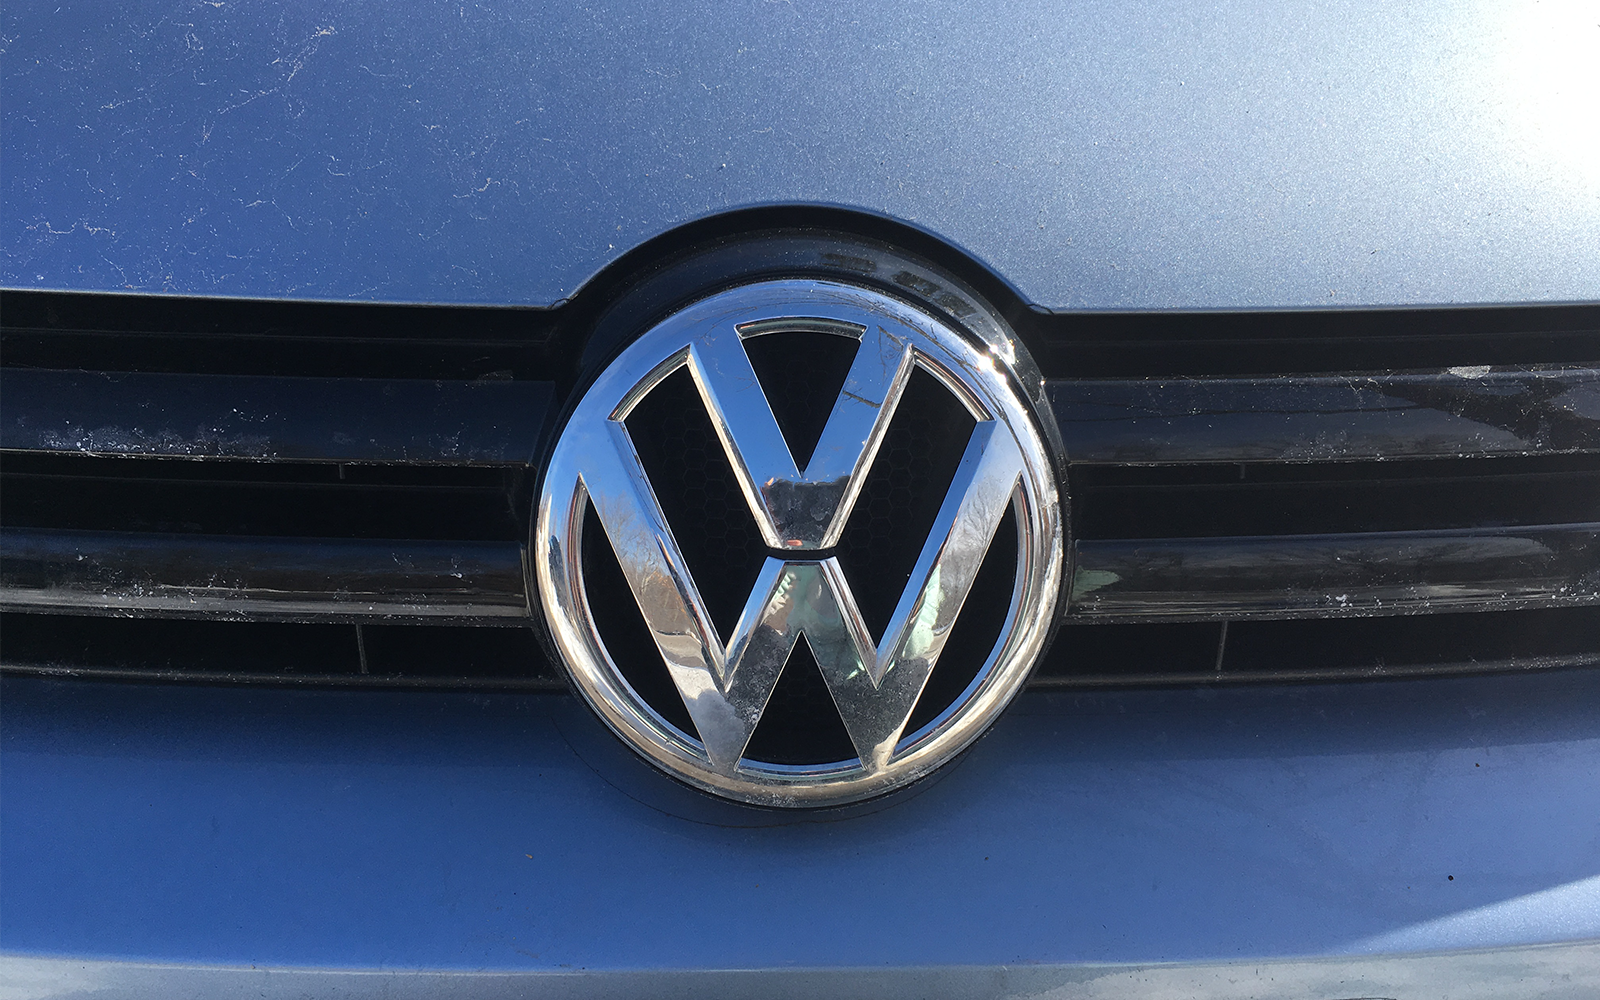 Photo of the Volkswagen emblem on a car